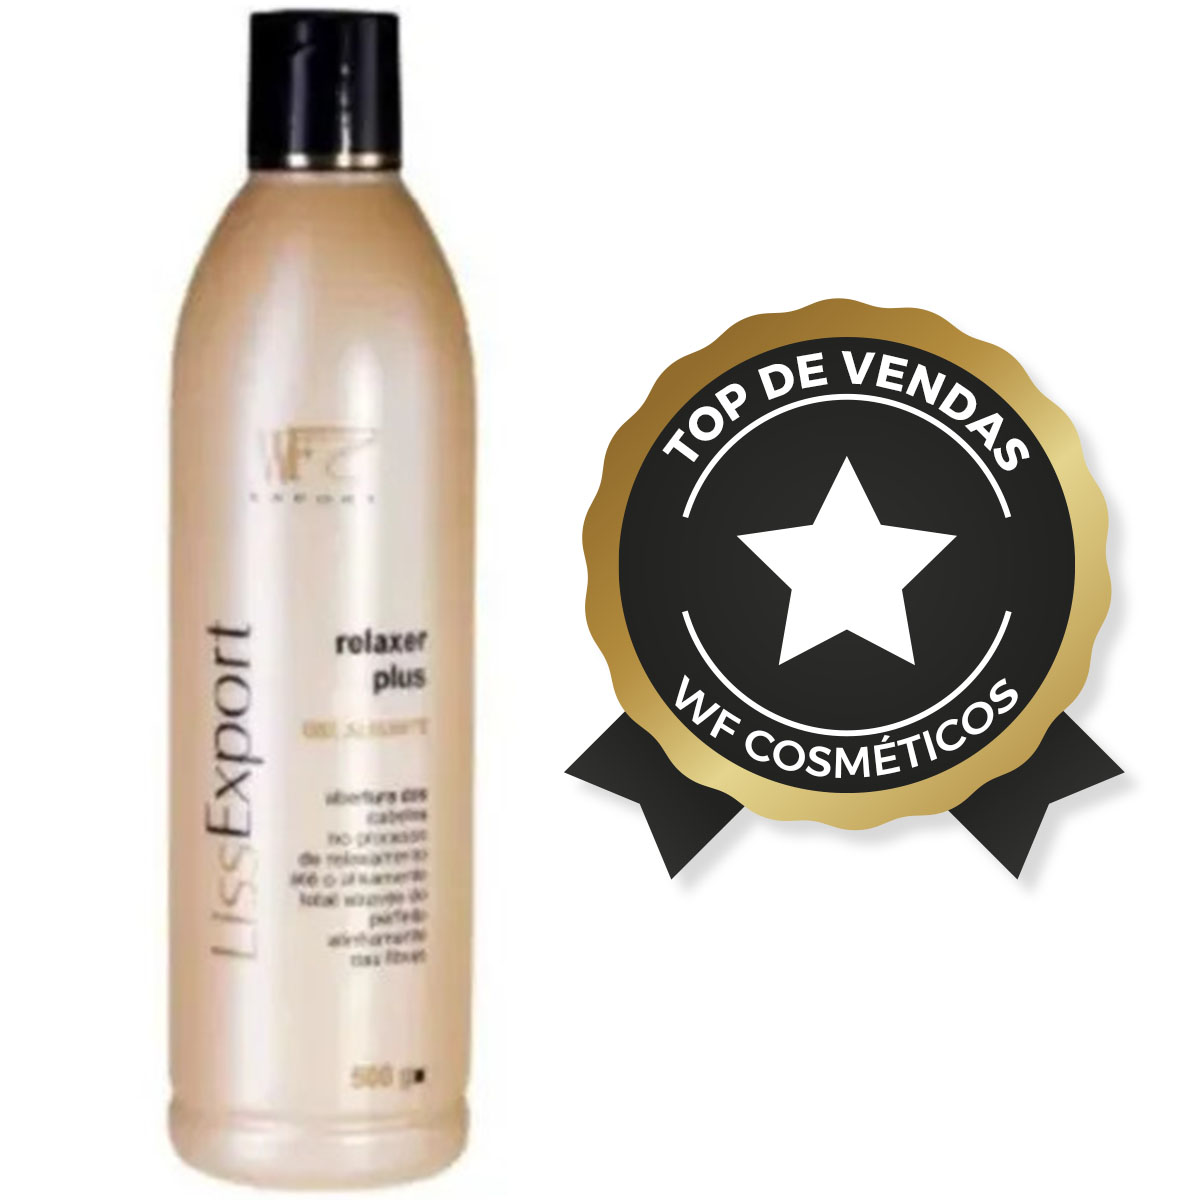 LISS EXPORT - ALISANTE RELAXER PLUS GEL WF COSMETICOS 500G